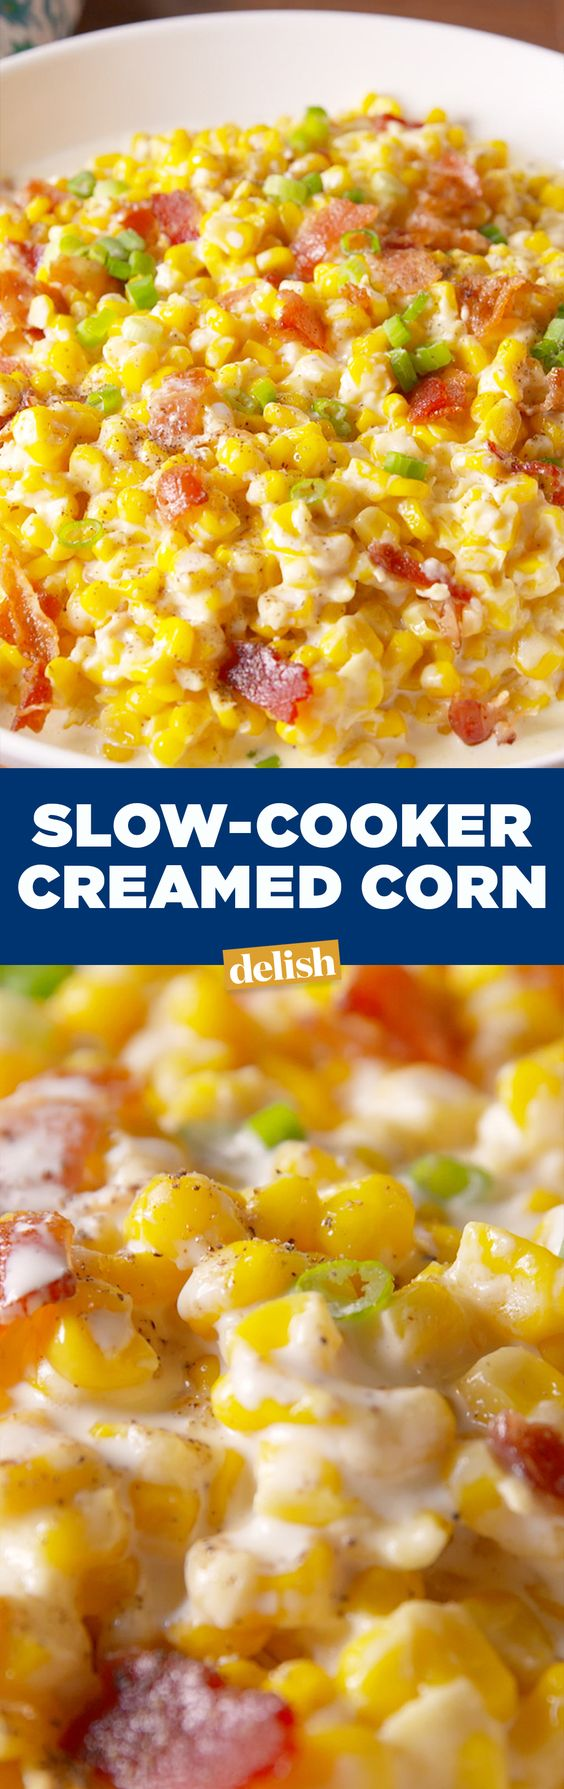 ... corn pudding slow cooker pot roast slow cooker bacon jam slow cooker